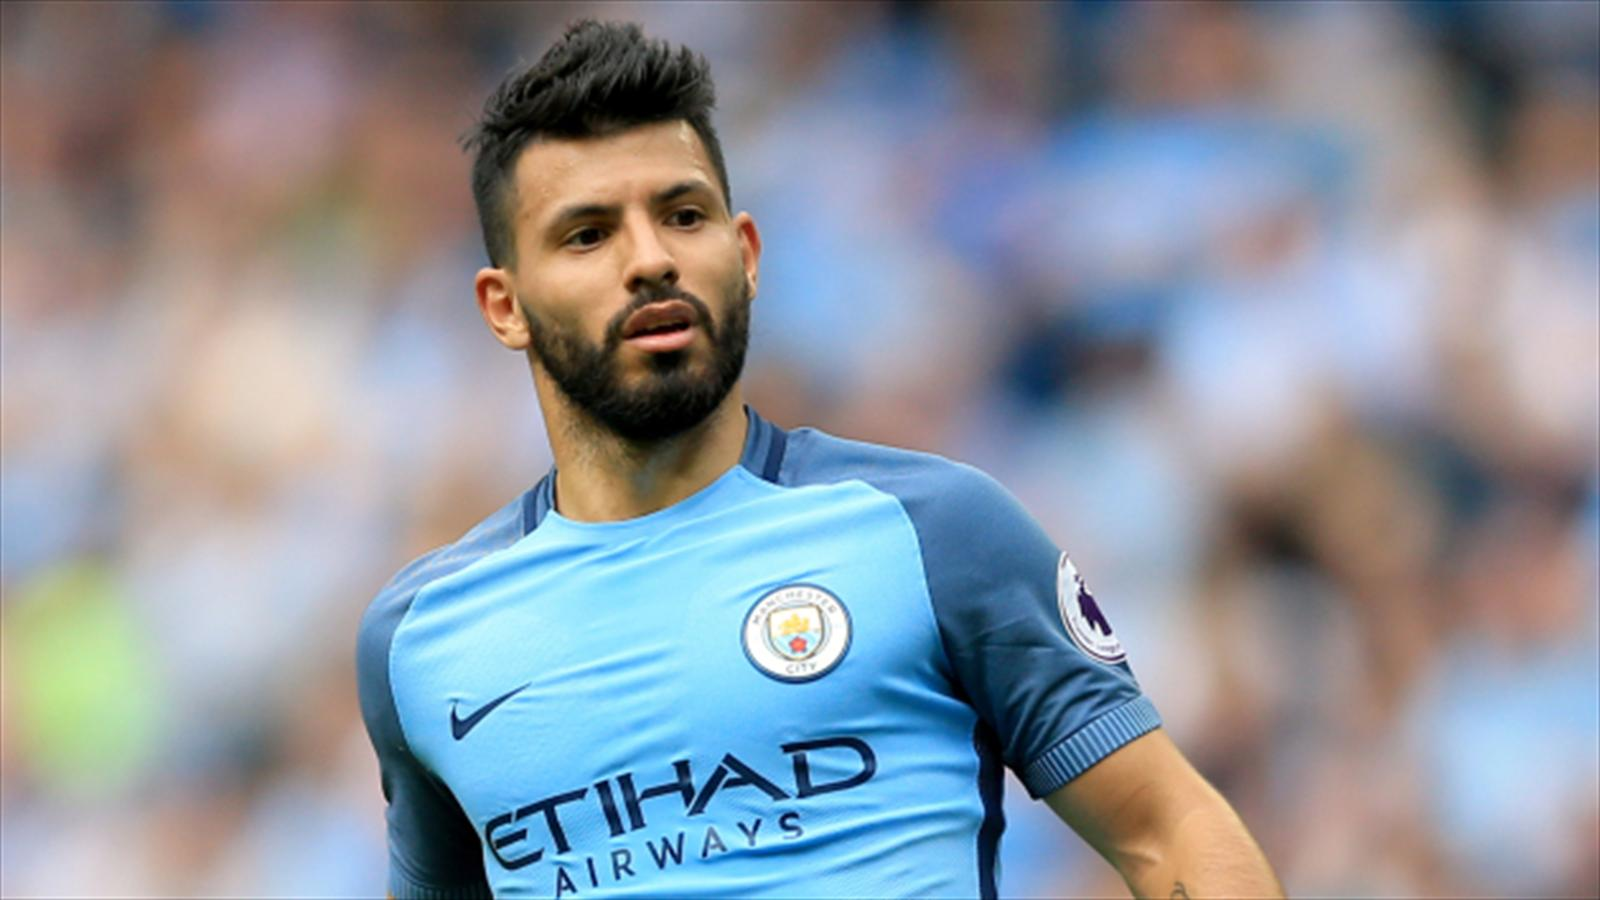 Sergio Aguero To Contest Violent Conduct Charge Football Eurosport - Hairstyle aguero 2016